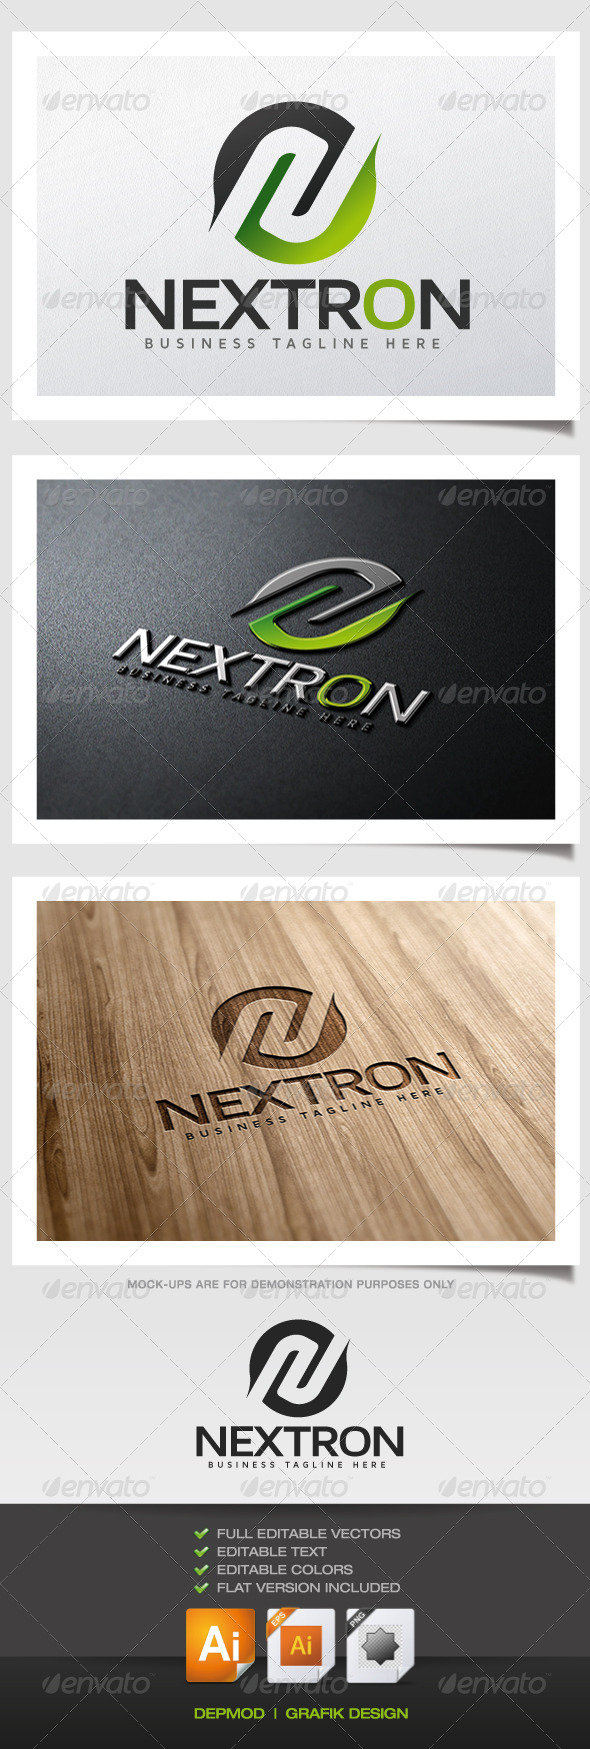 Nextron Logo - Abstract Logo Templates